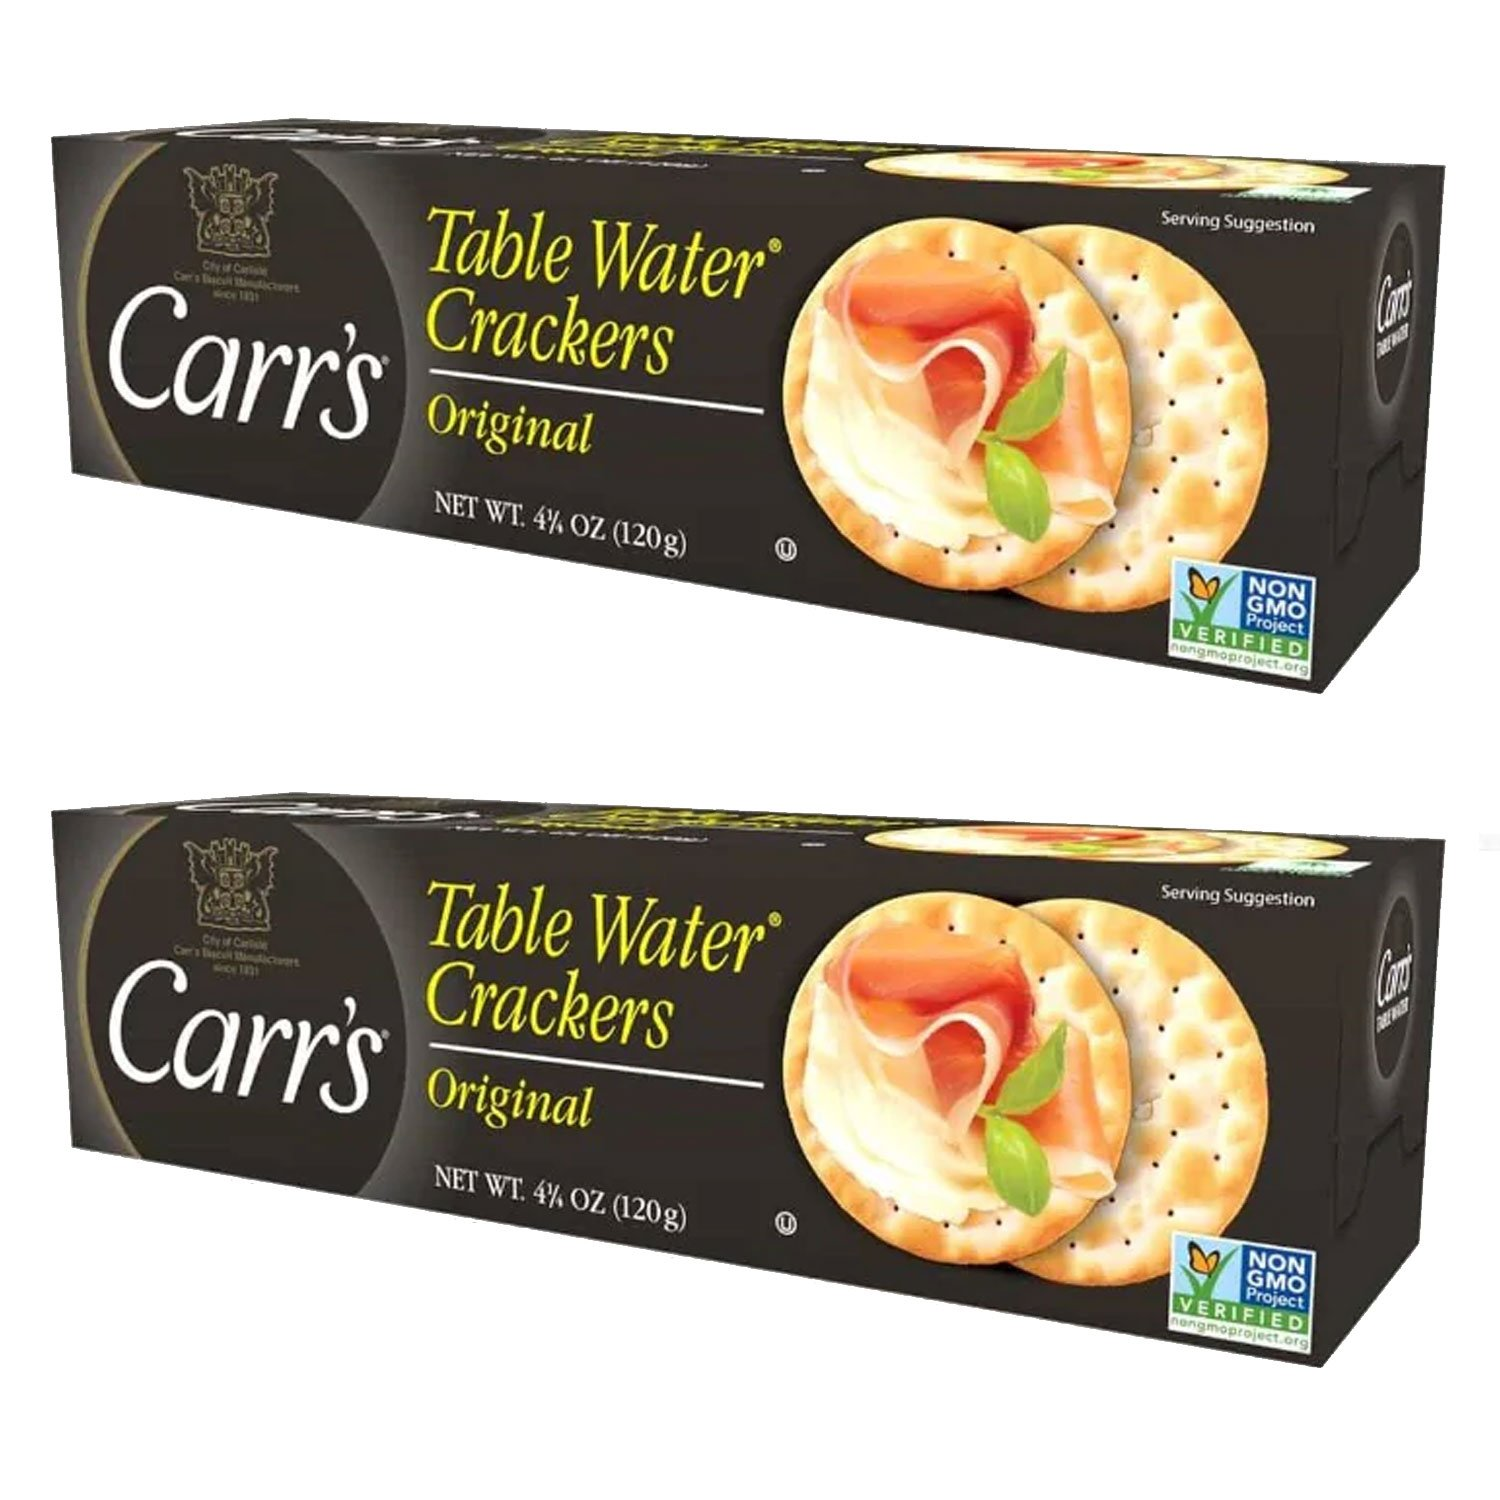 Carr's Original Table Water Crackers 4-1 4 Pack 2 40% OFF Cheap Sale Max 60% OFF Ounce of